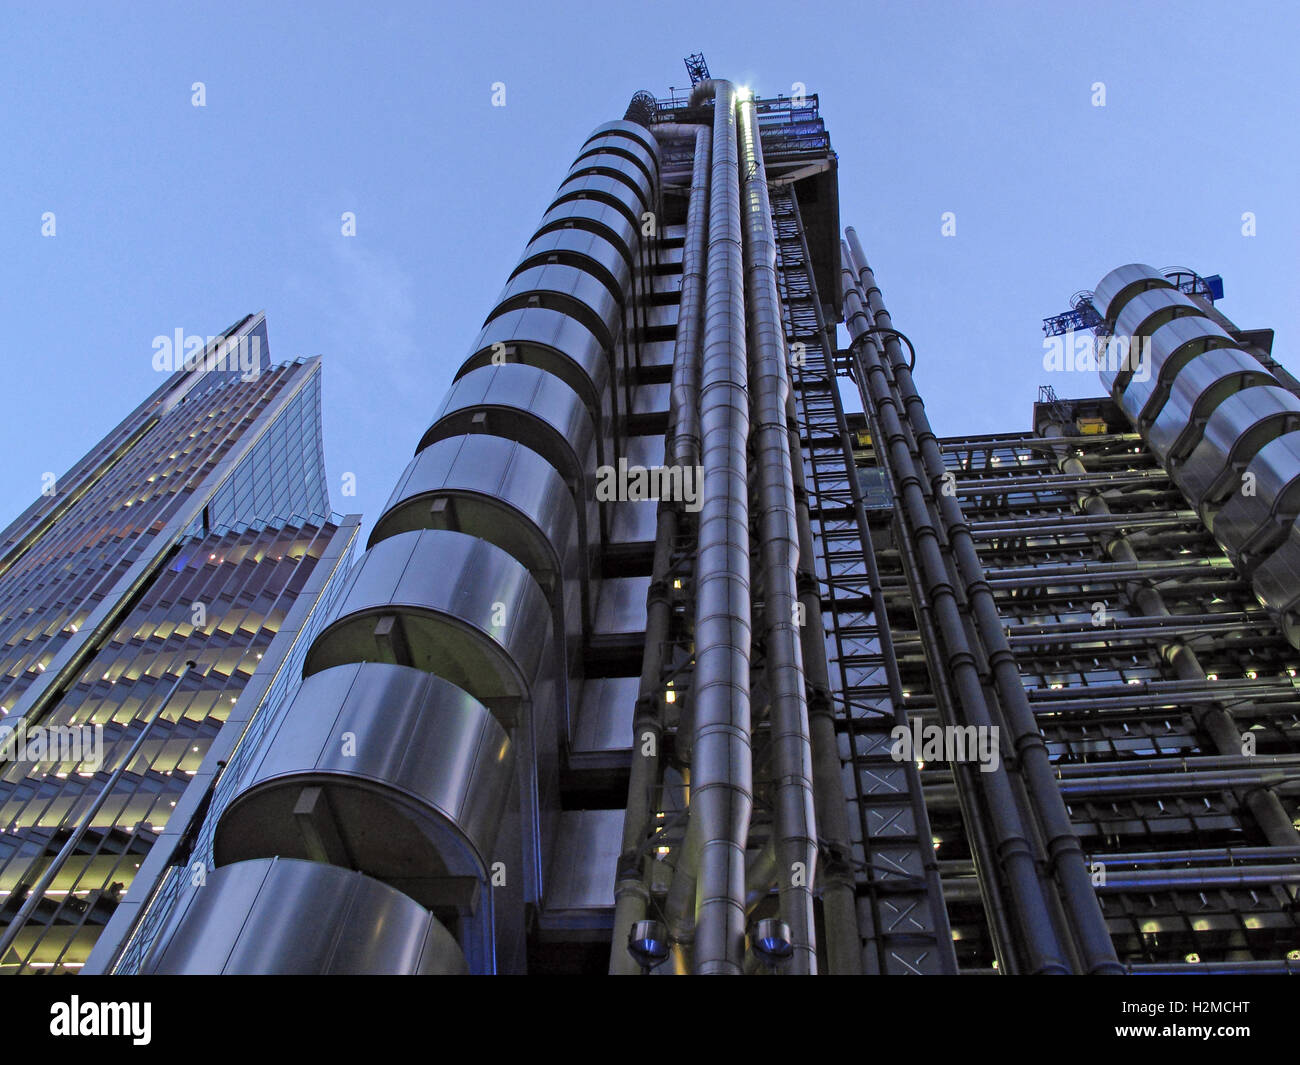 Inside-Out,city,of,financial,district,Brexit,Passporting,radical,Bowellism,architecture,street,modern,night,shot,nightshot,tower,metropolis,twilight,bold,Lloyds Building,Lloyds Insurance Building,Financial District,Financial Passporting,Lime St,Lime Street,Richard Rogers,GoTonySmith,@HotpixUK,Tony,Smith,different,unique,Richard,Rogers,Bovis,construction,film,location,locations,steel,glass,windows,financial,centre,center,Europe,Futuristic,GB,UK,controversial,design,Buy Pictures of,Buy Images Of,Images of,Stock Images,Tony Smith,Photo of,Night Shot,City Of London,Great Britain